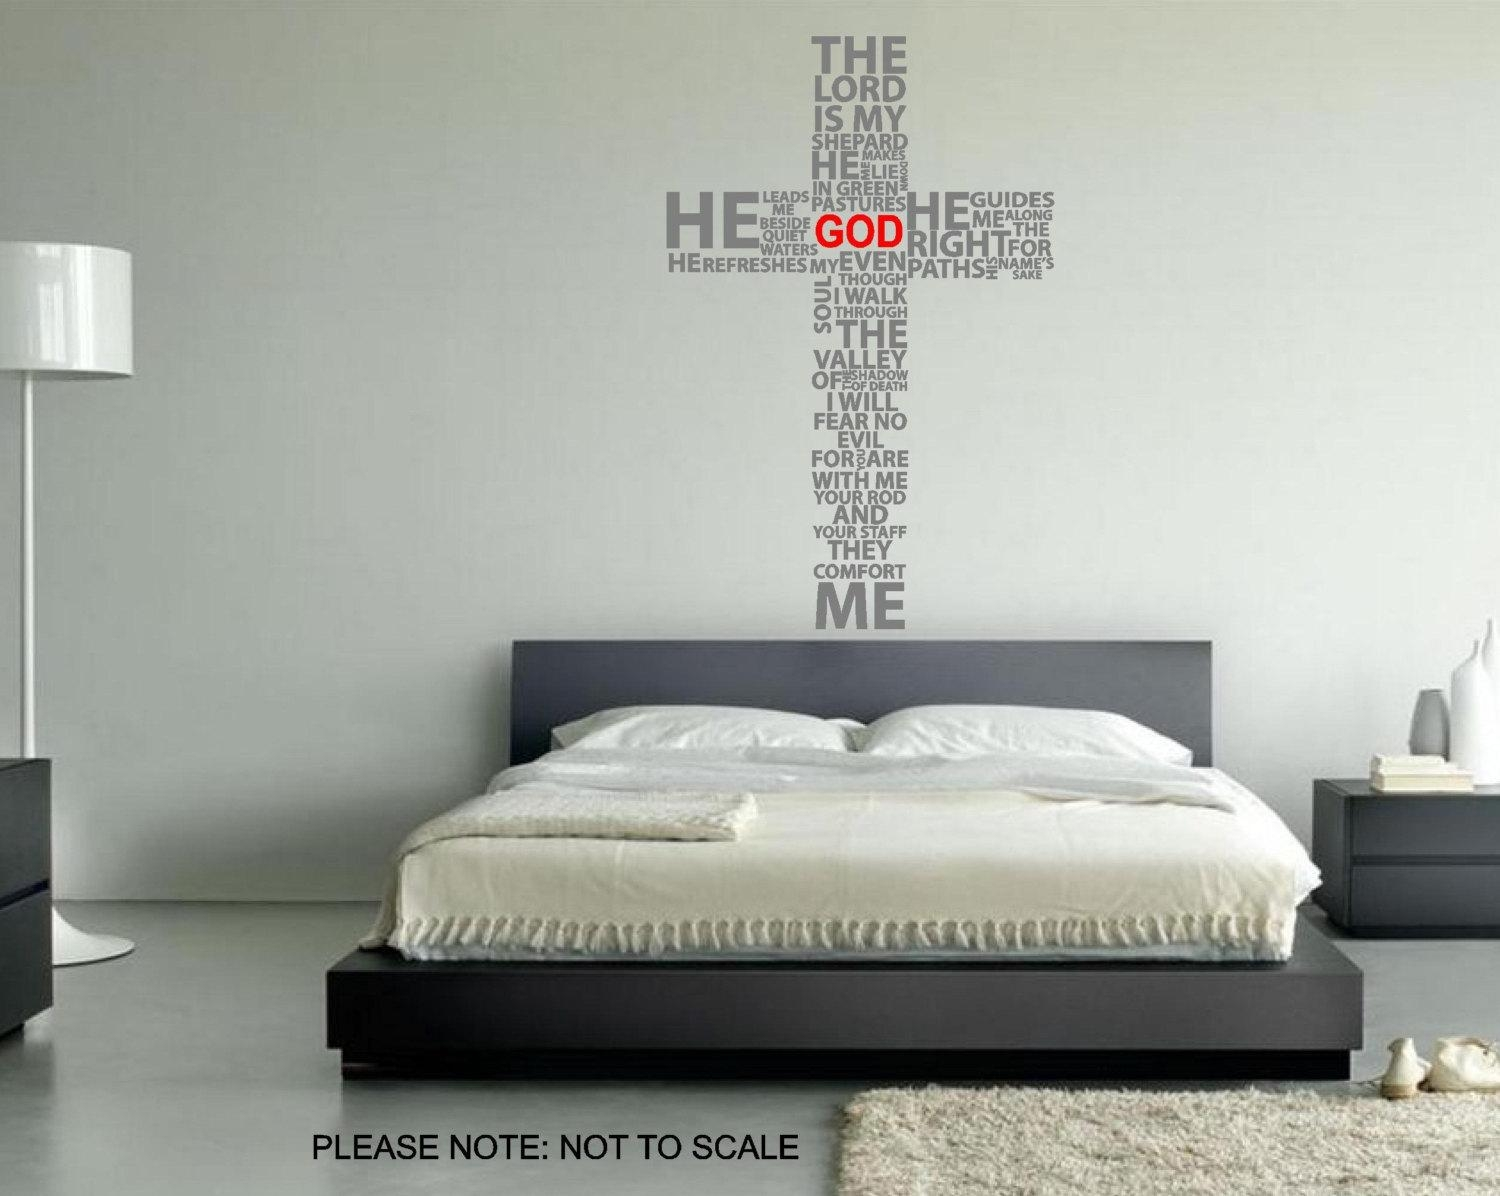 Christian Wall Decals Interest Christian Wall Decals – Home Decor Intended For Biblical Wall Art (View 20 of 20)